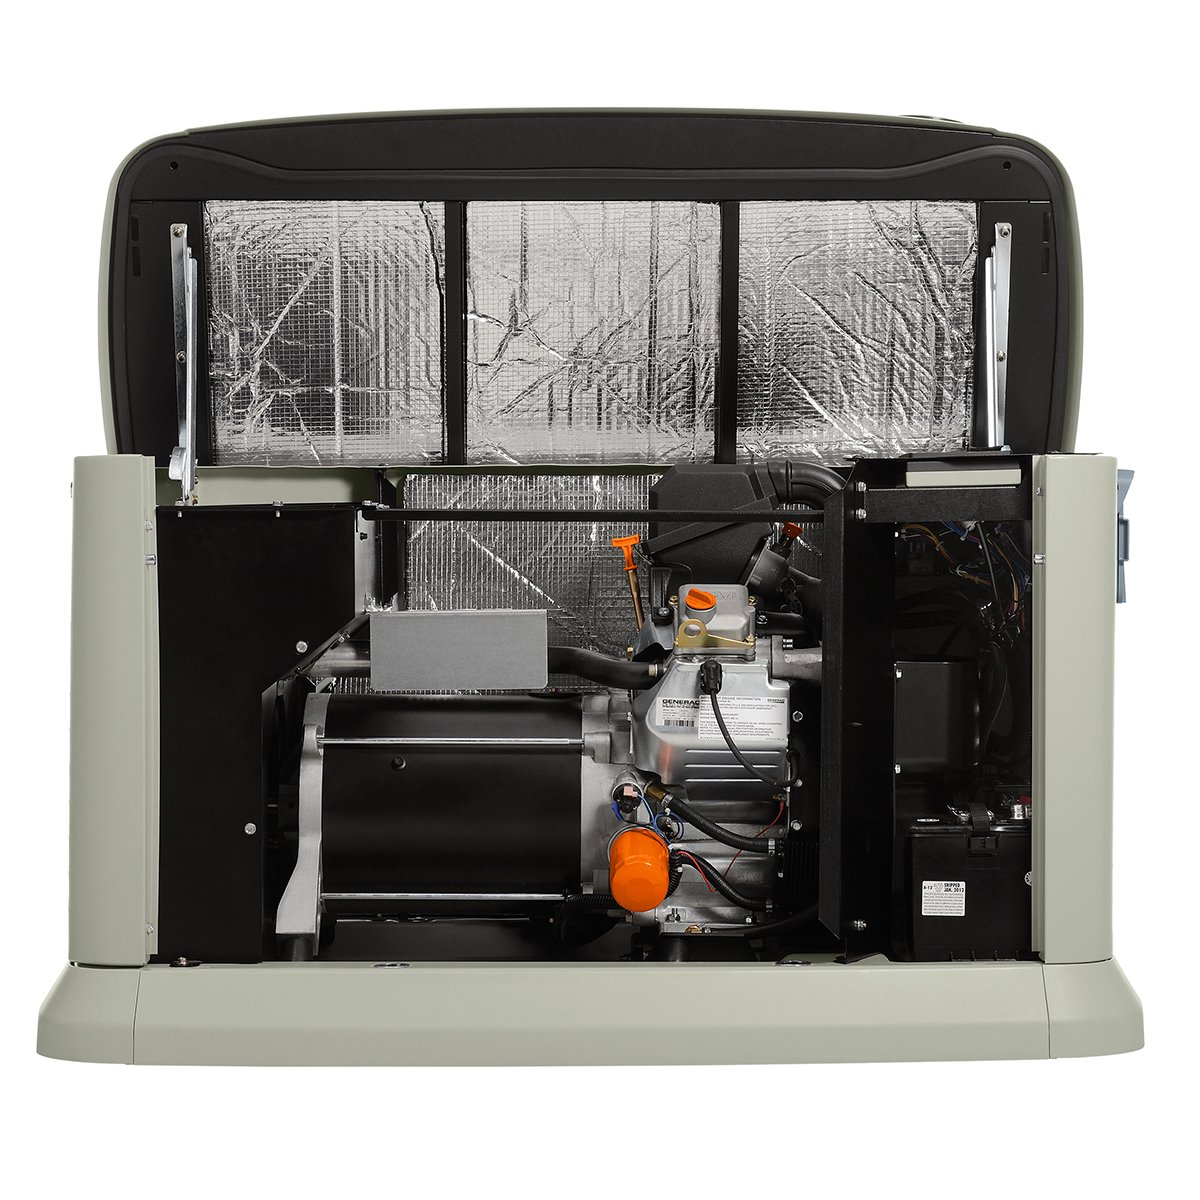 Amazon generac 6461 guardian series 16kw air cooled standby amazon generac 6461 guardian series 16kw air cooled standby generator natural gasliquid propane powered steel enclosed with 16 circuit 100 amp sciox Image collections